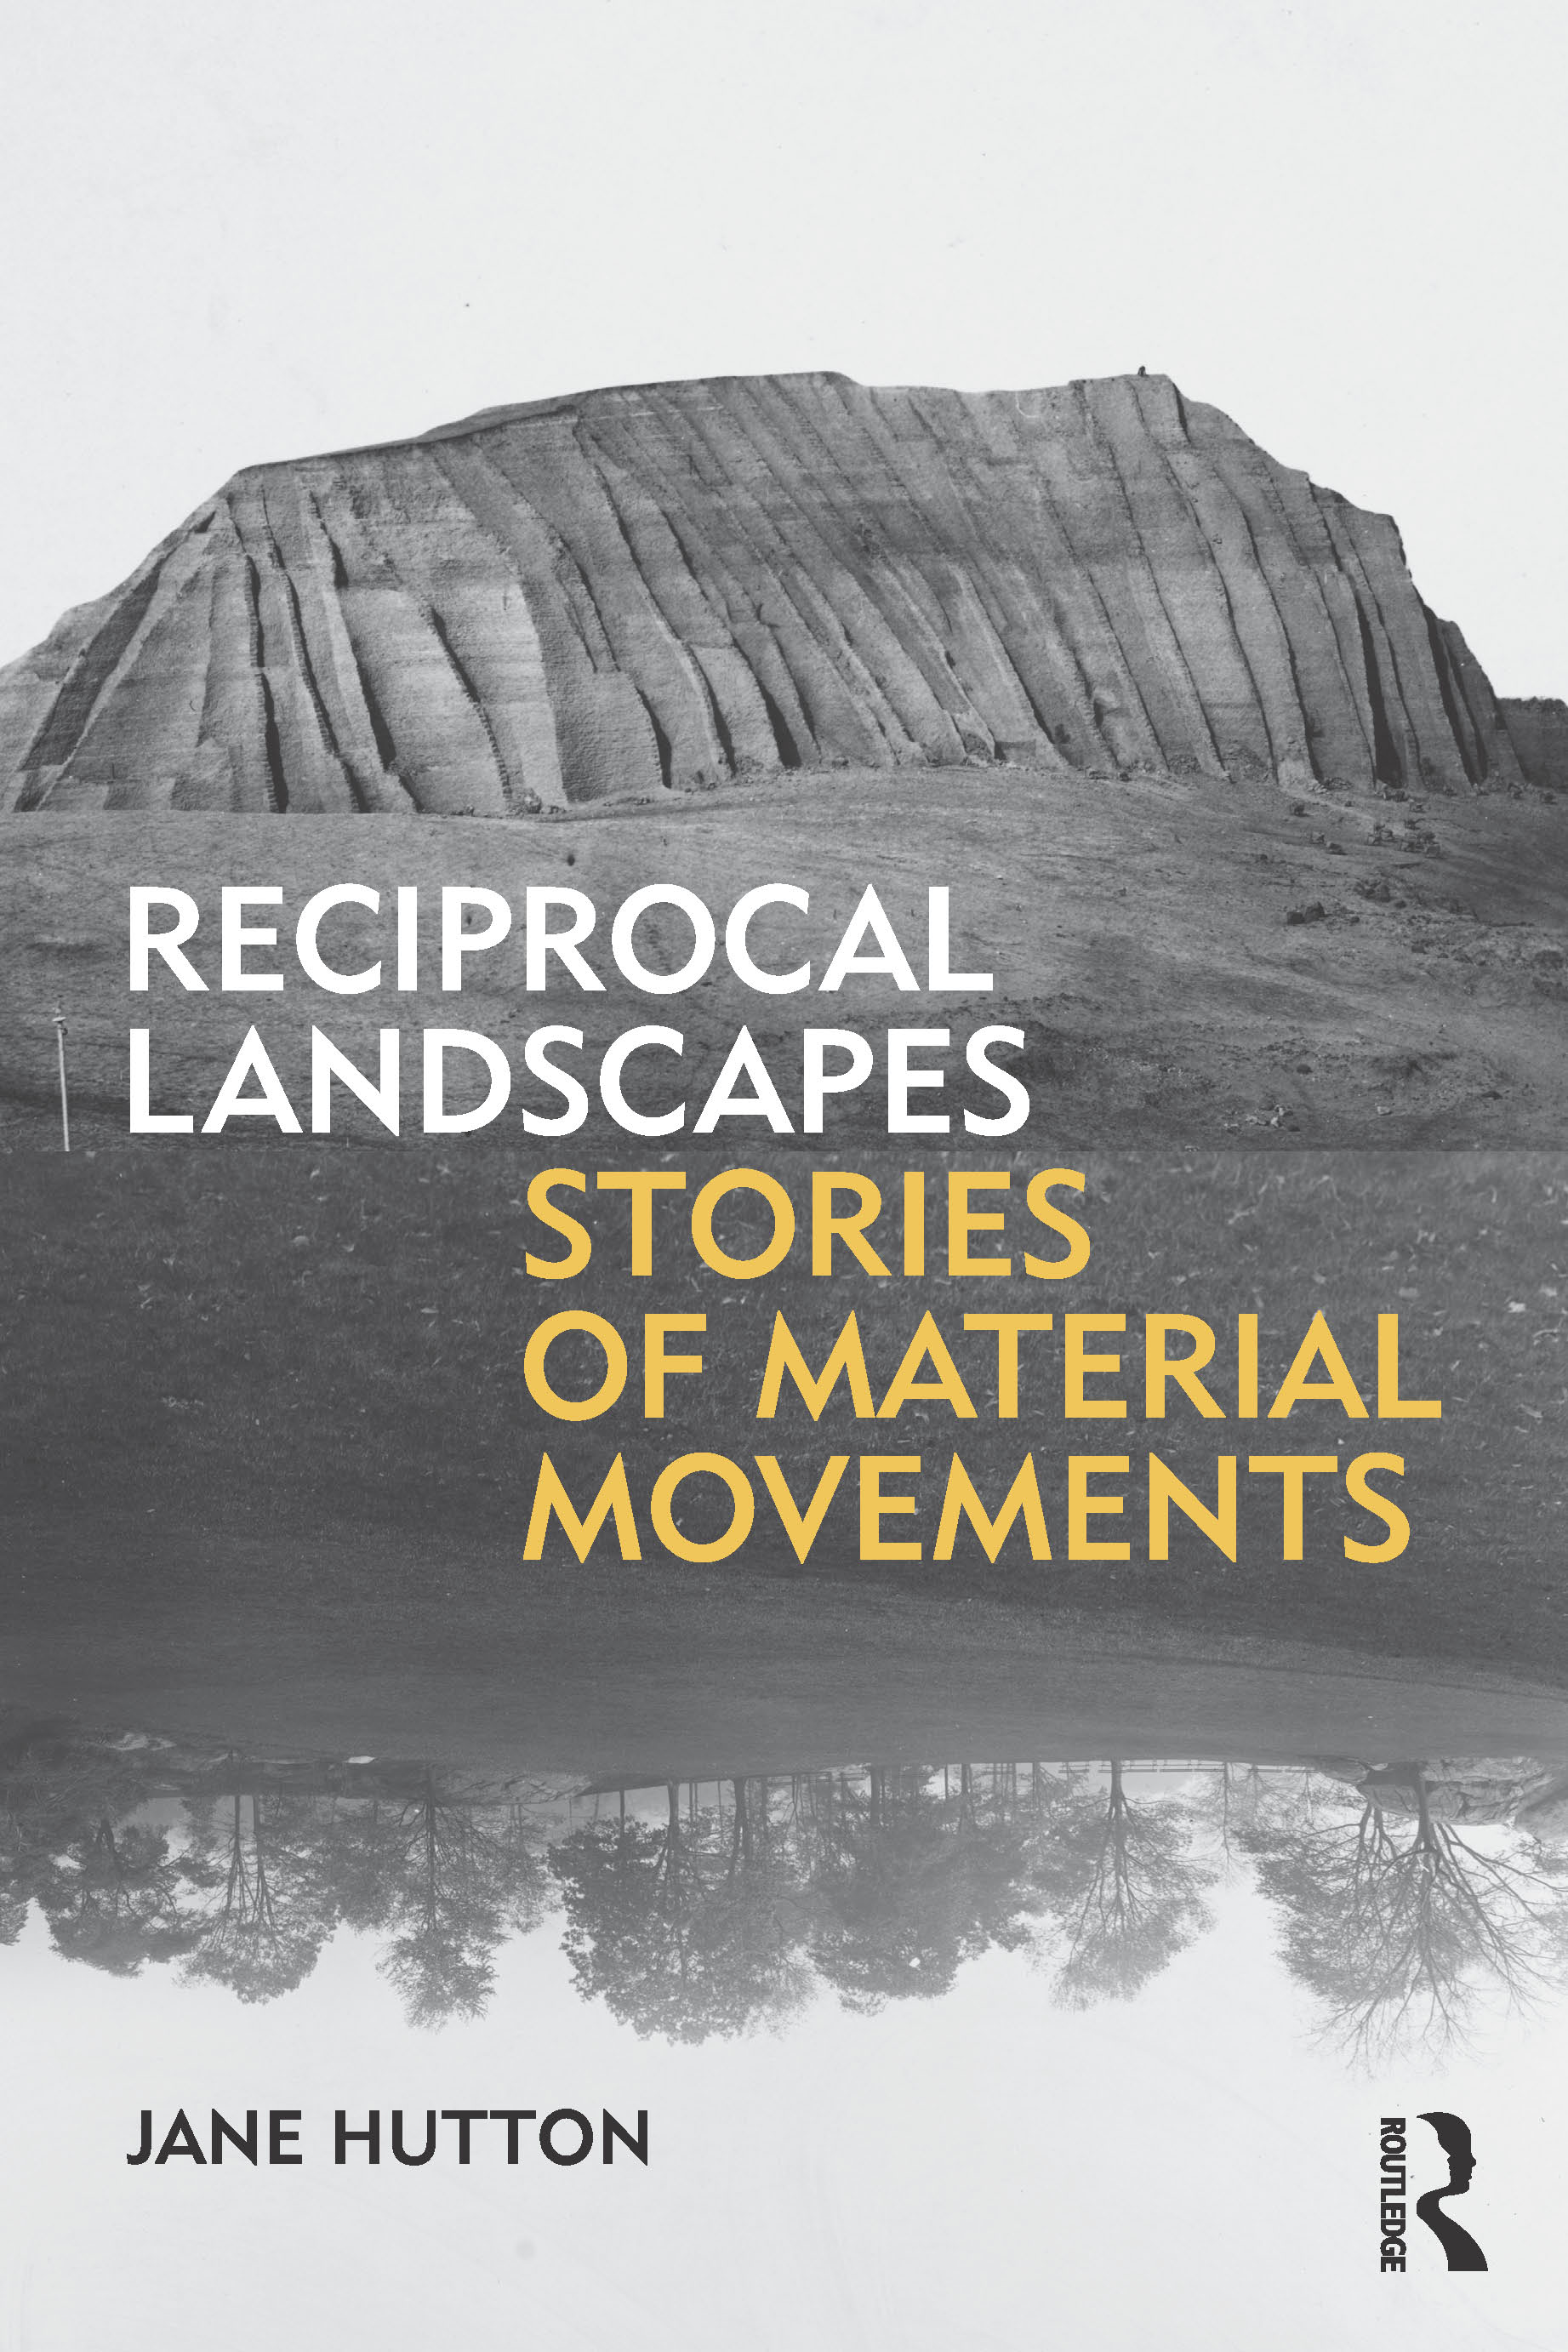 Reciprocal landscapes book cover